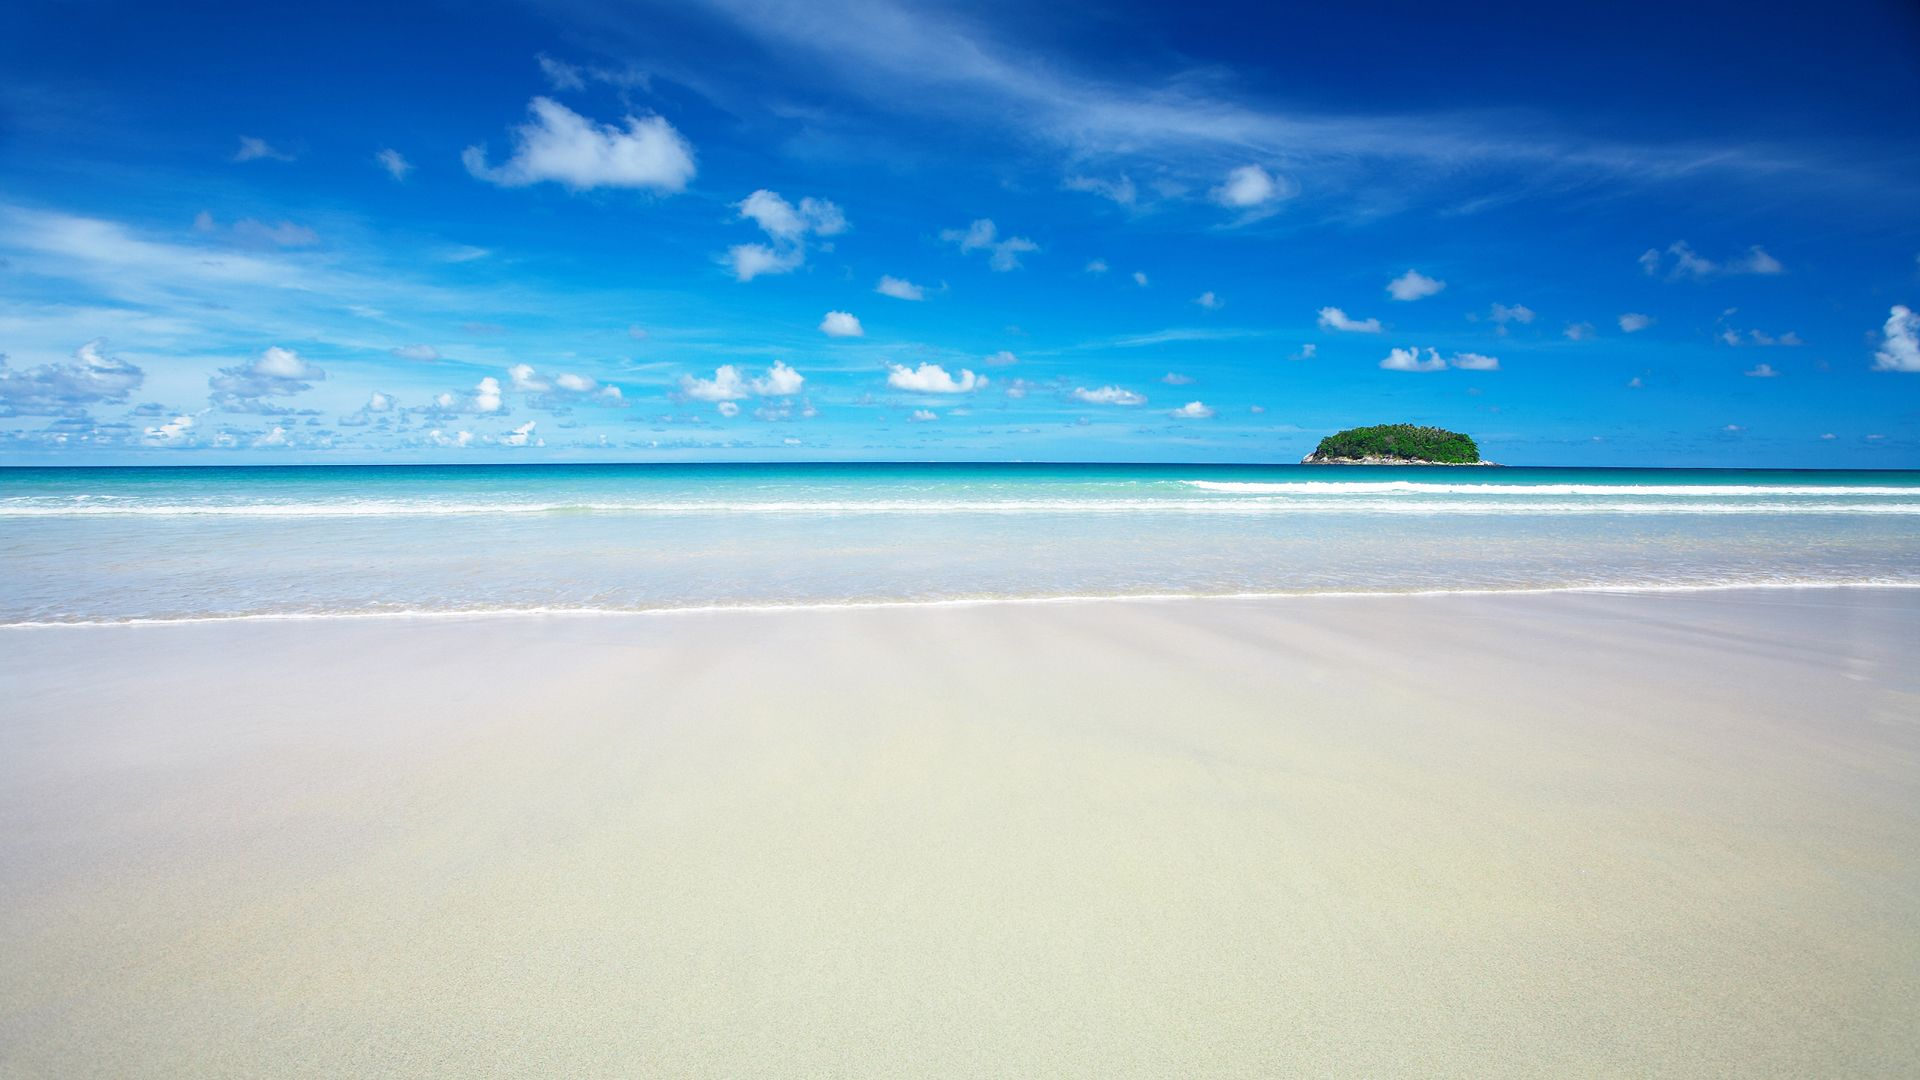 HD Sky Blue Beach Wallpapers | HD Wallpapers